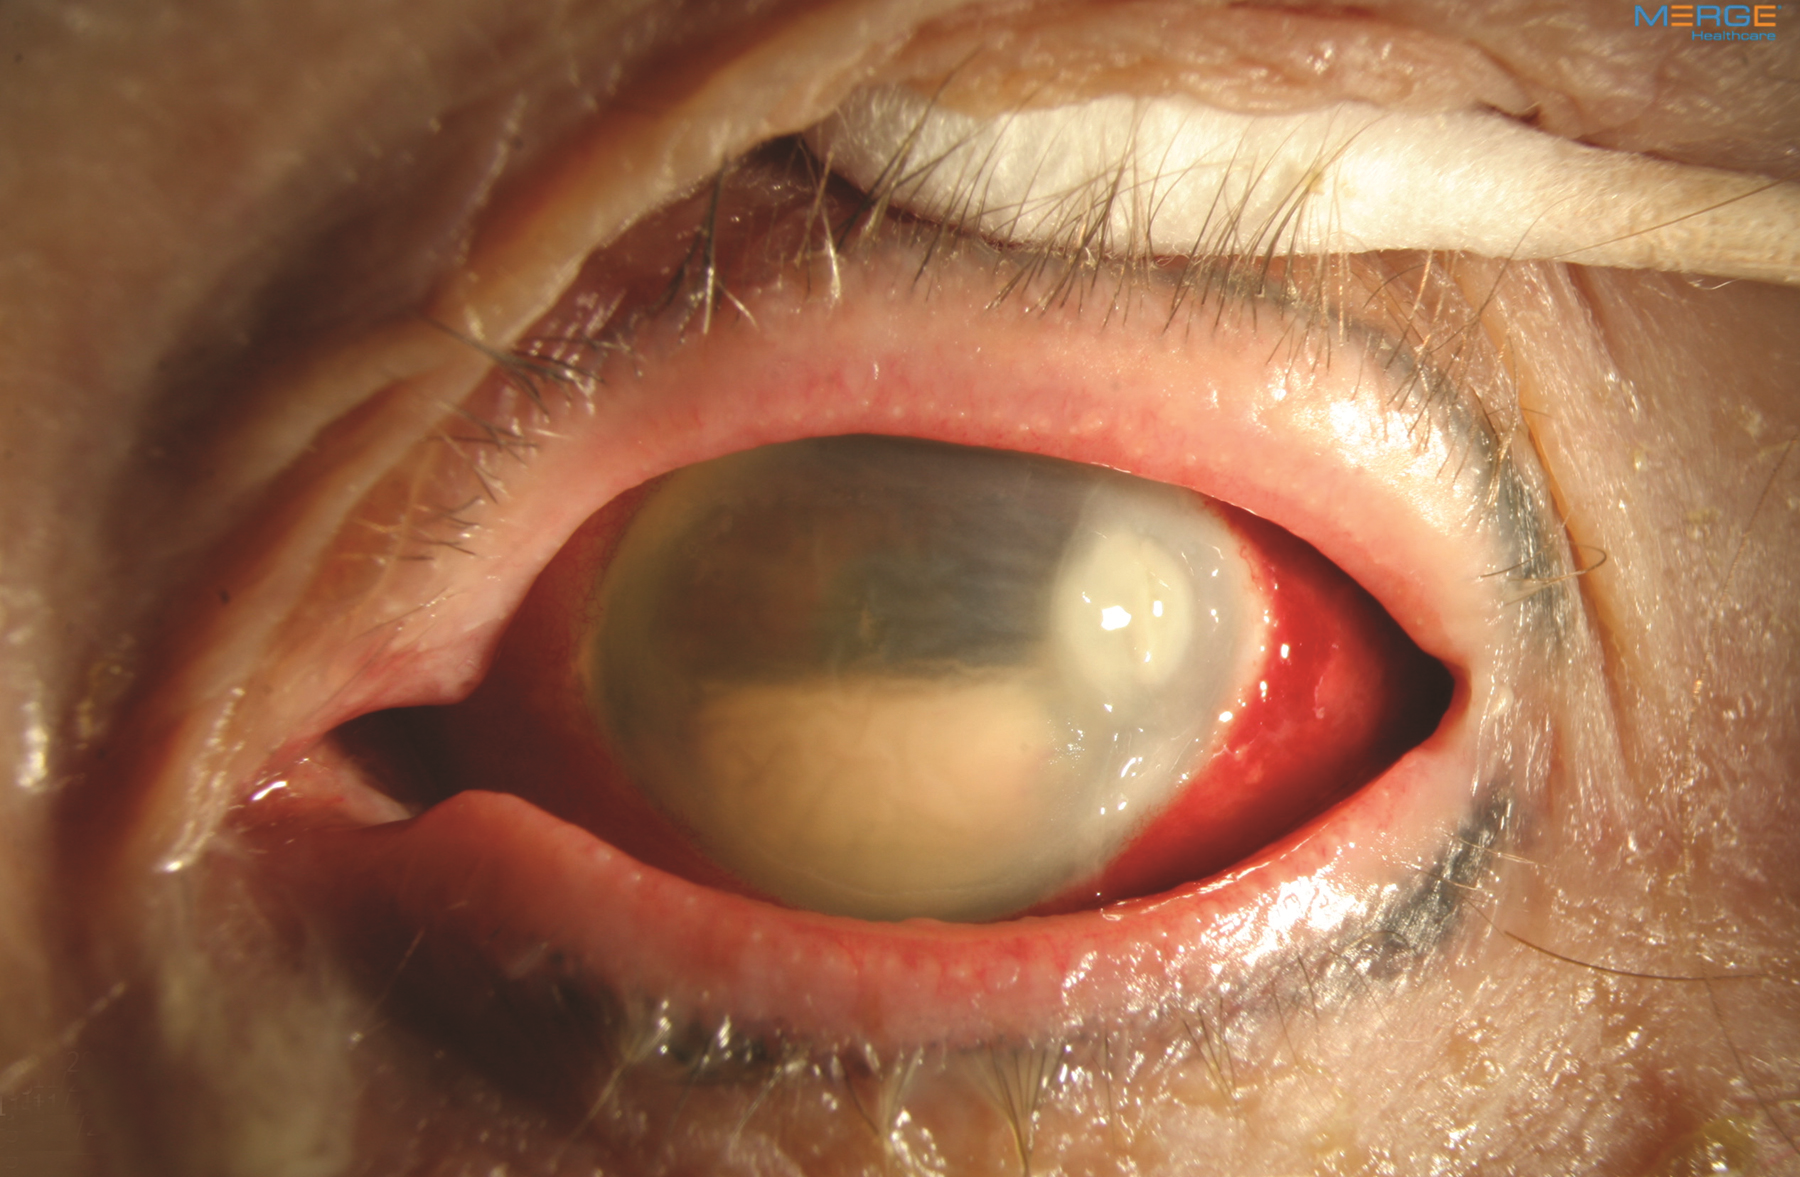 endophthalmitis the american society of retina specialists the